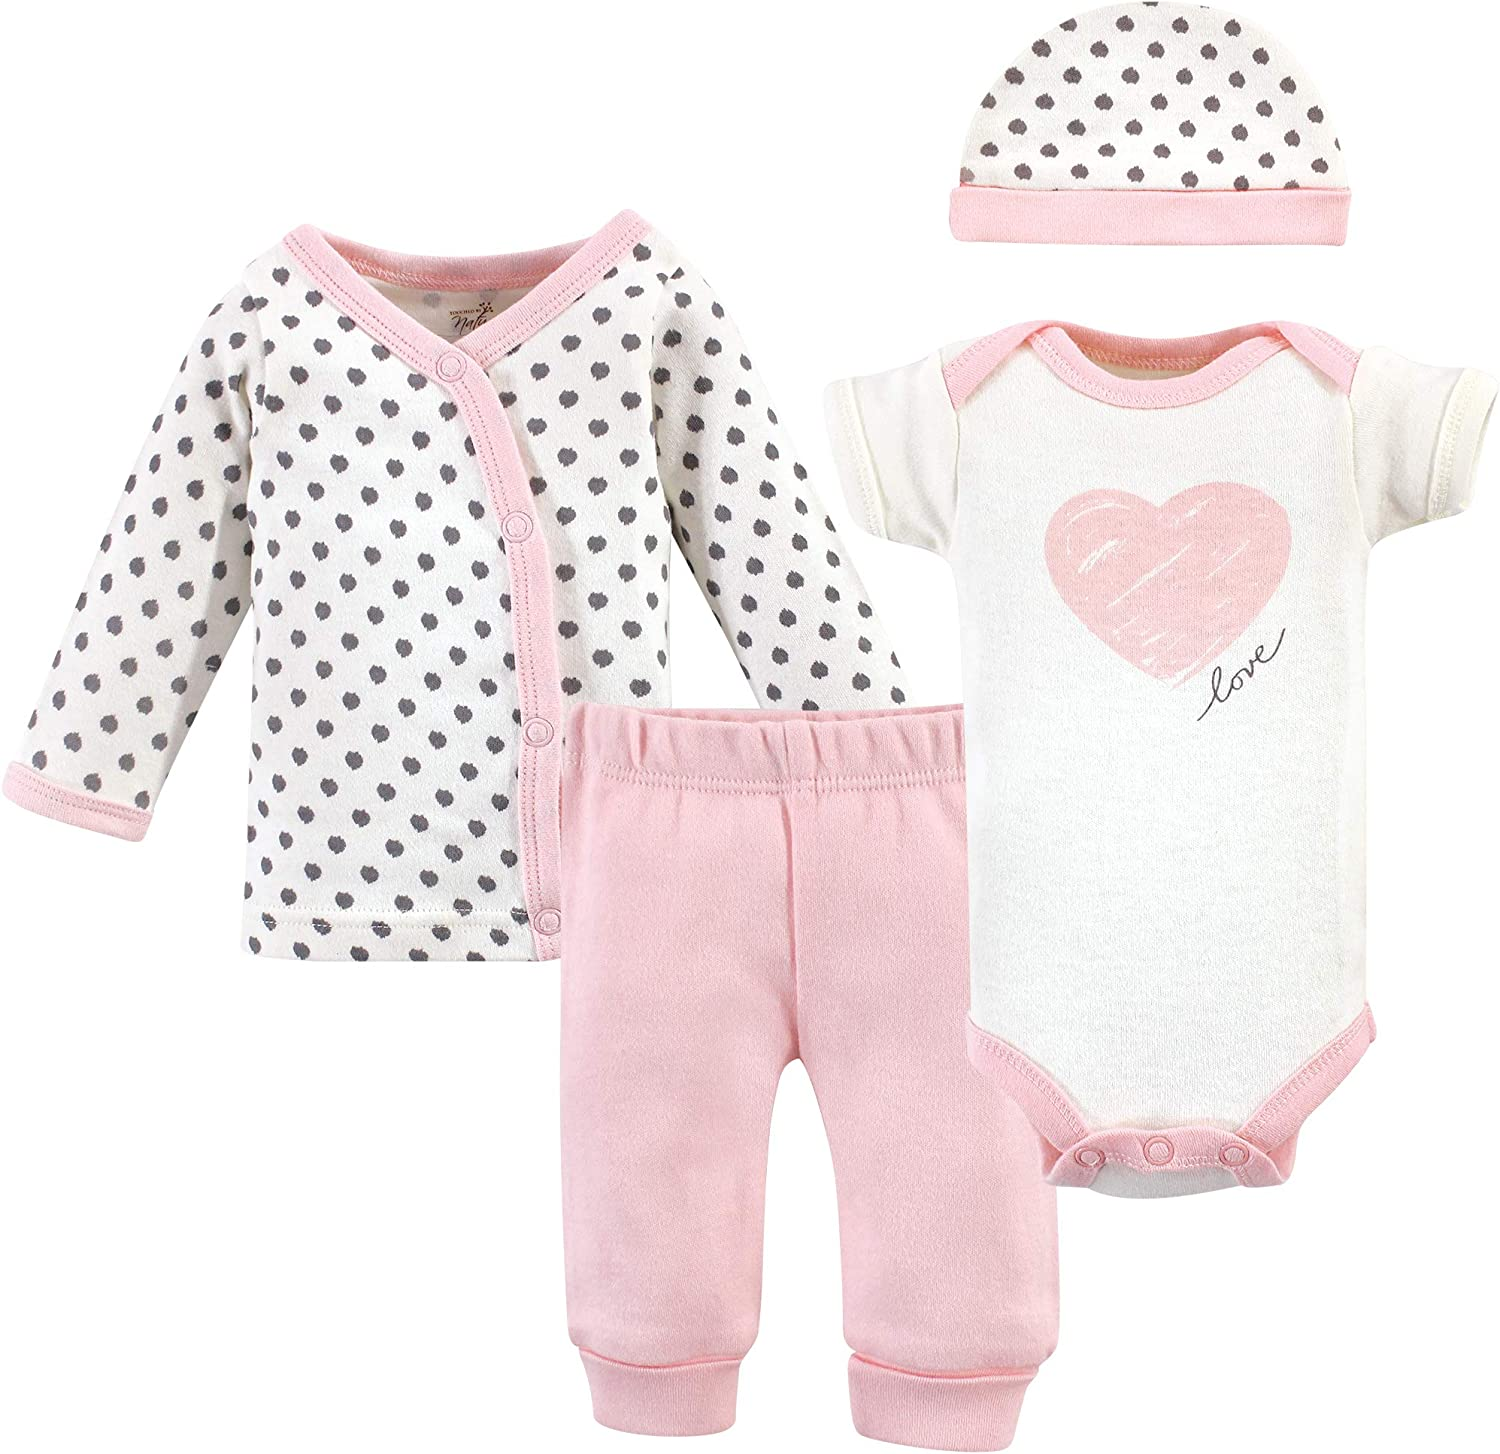 Touched by Nature Unisex Baby Organic Cotton Preemie Layette Set